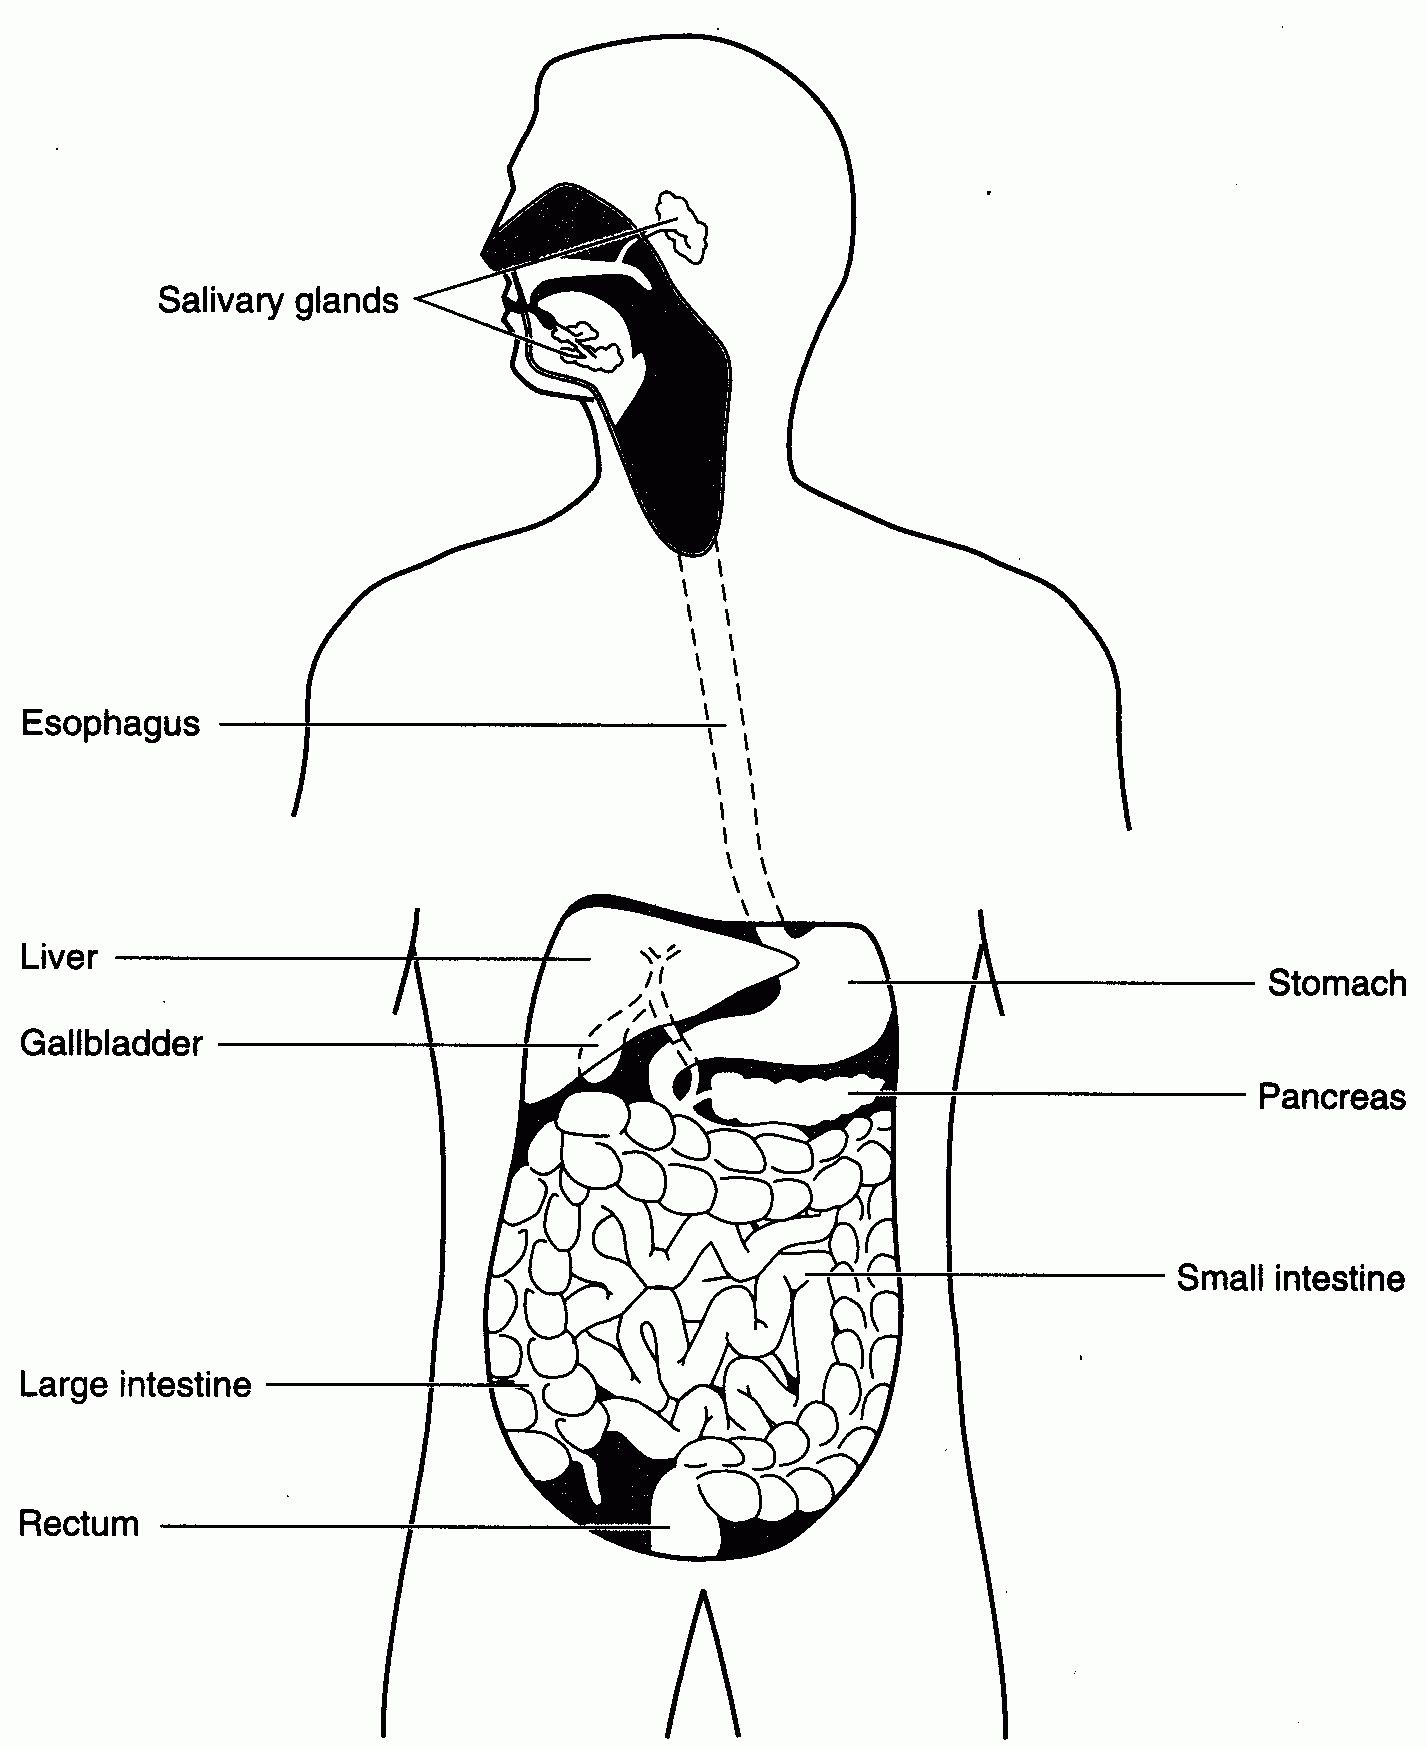 Digestive System Worksheets Middle School Image Result for Excretory System Diagram Worksheet